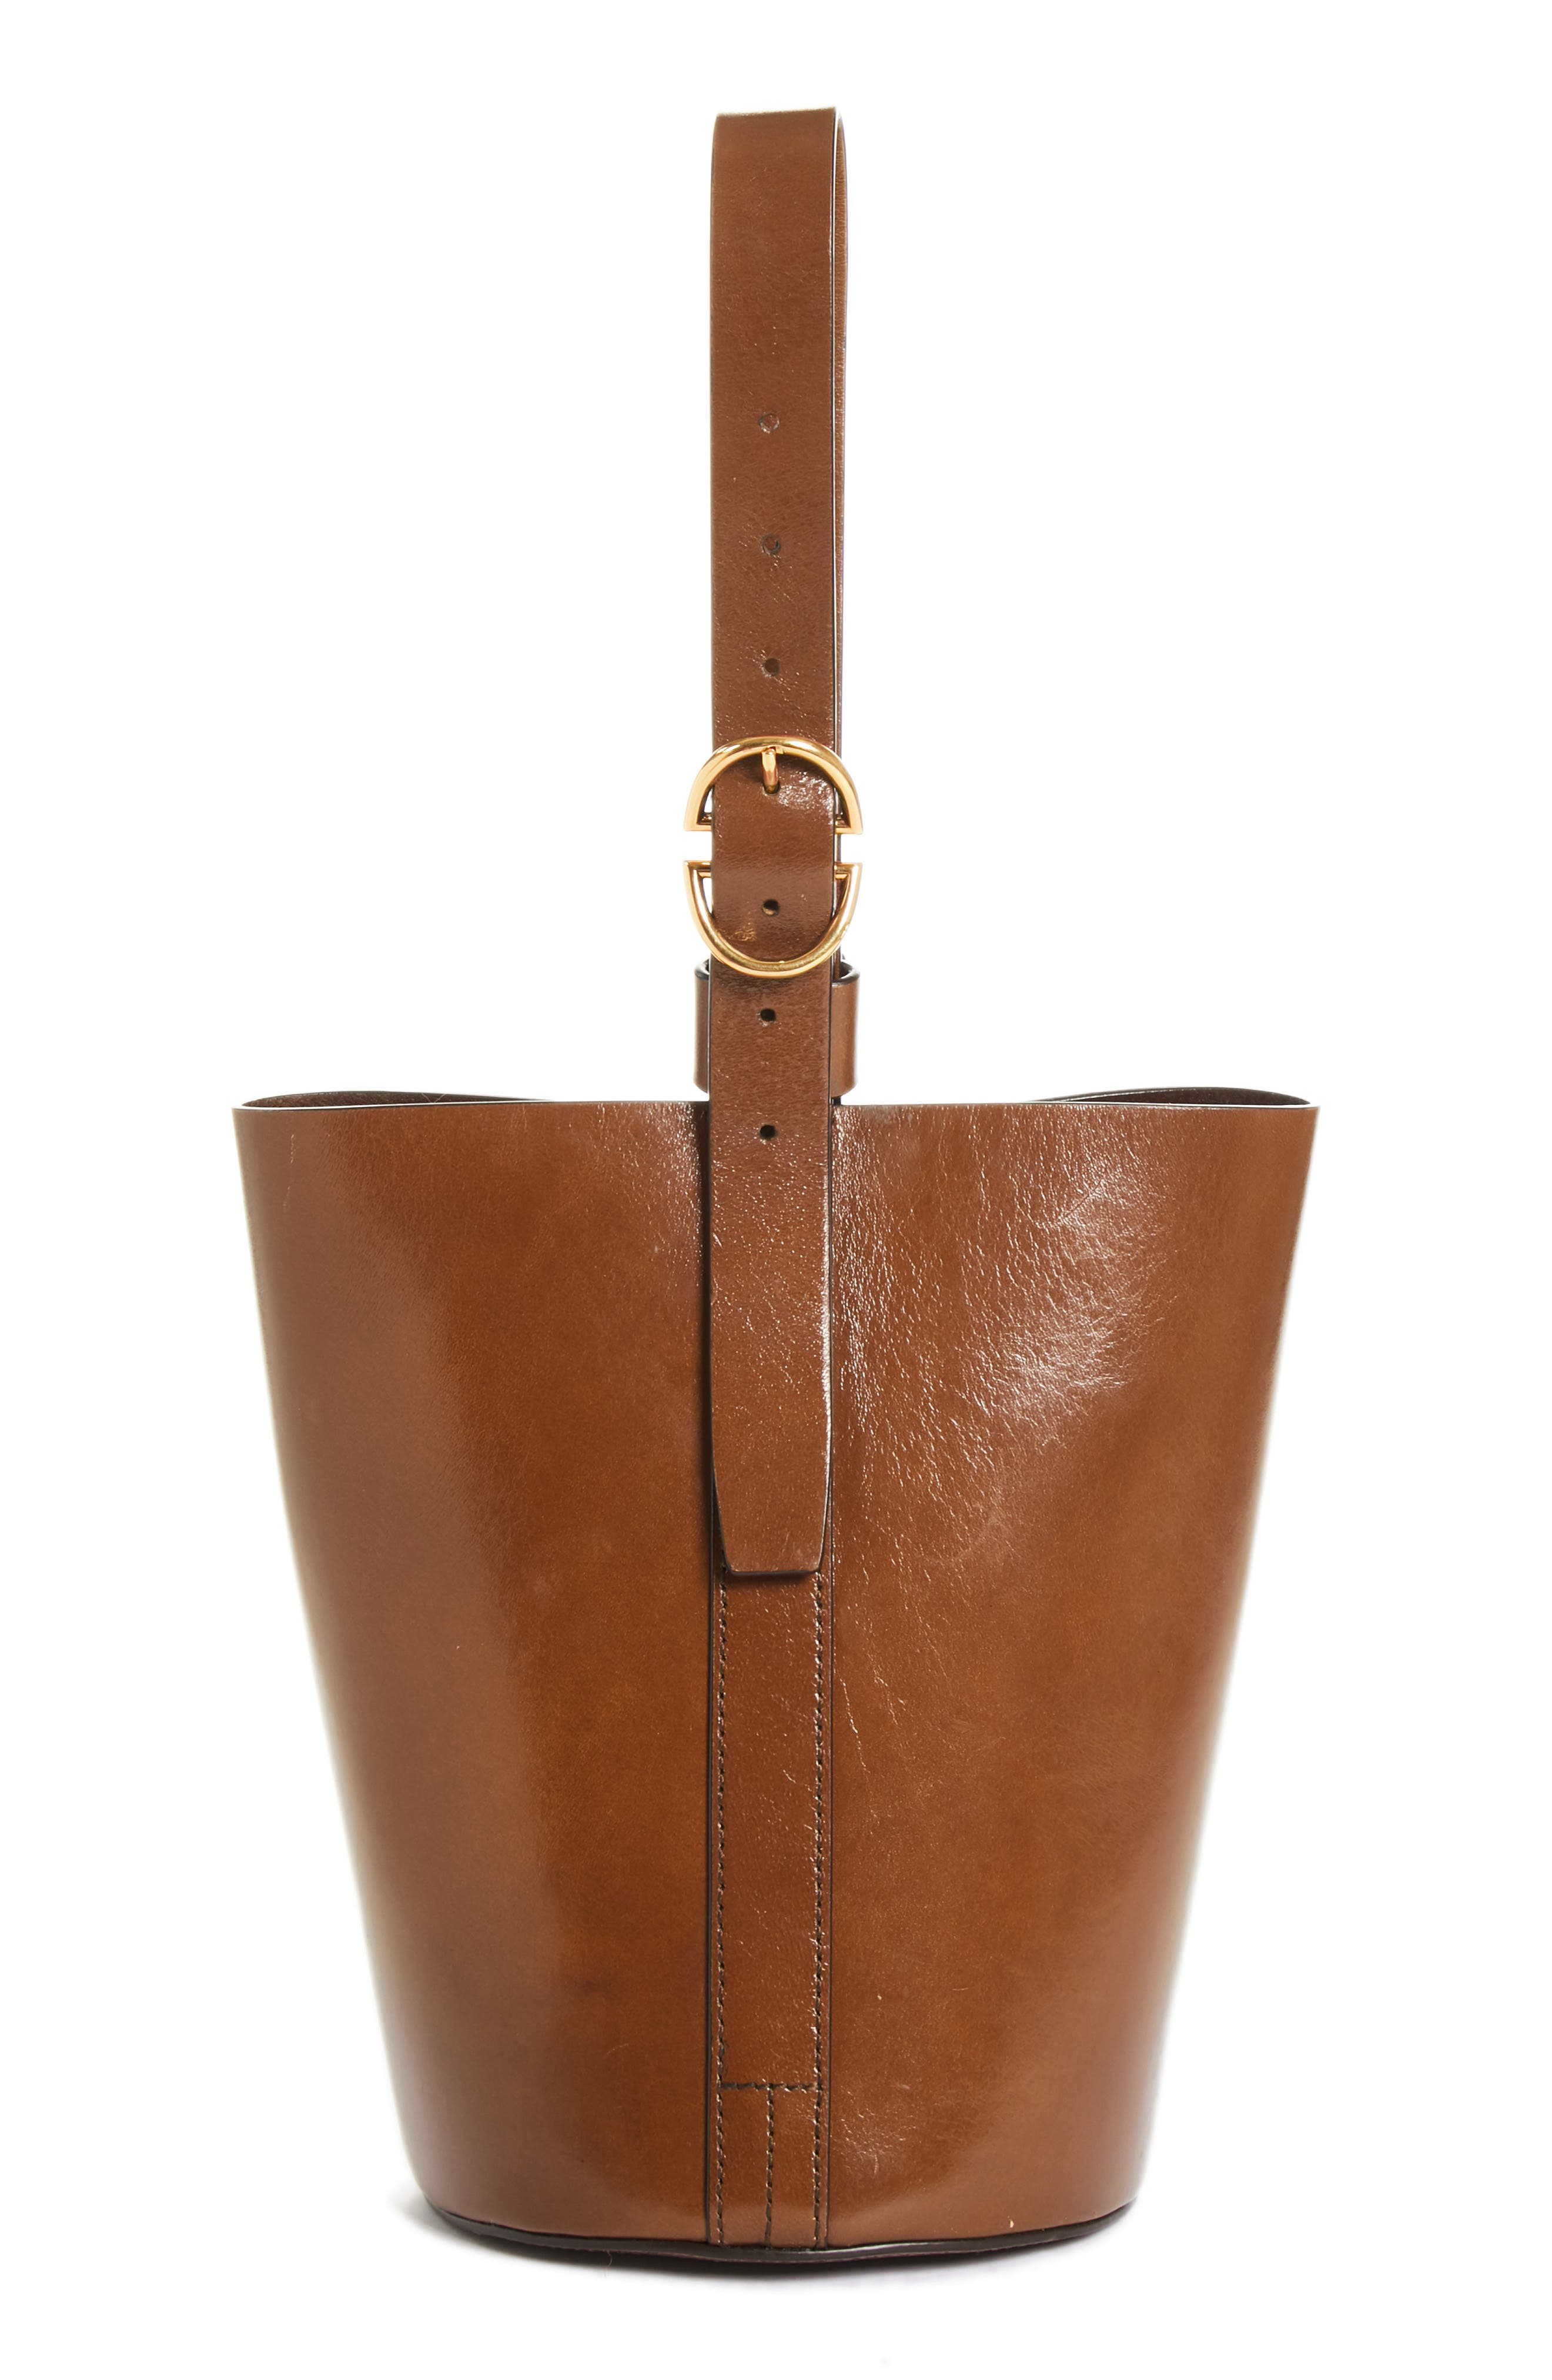 TRADEMARK,                             Small Leather Bucket Bag,                             Main thumbnail 1, color,                             201